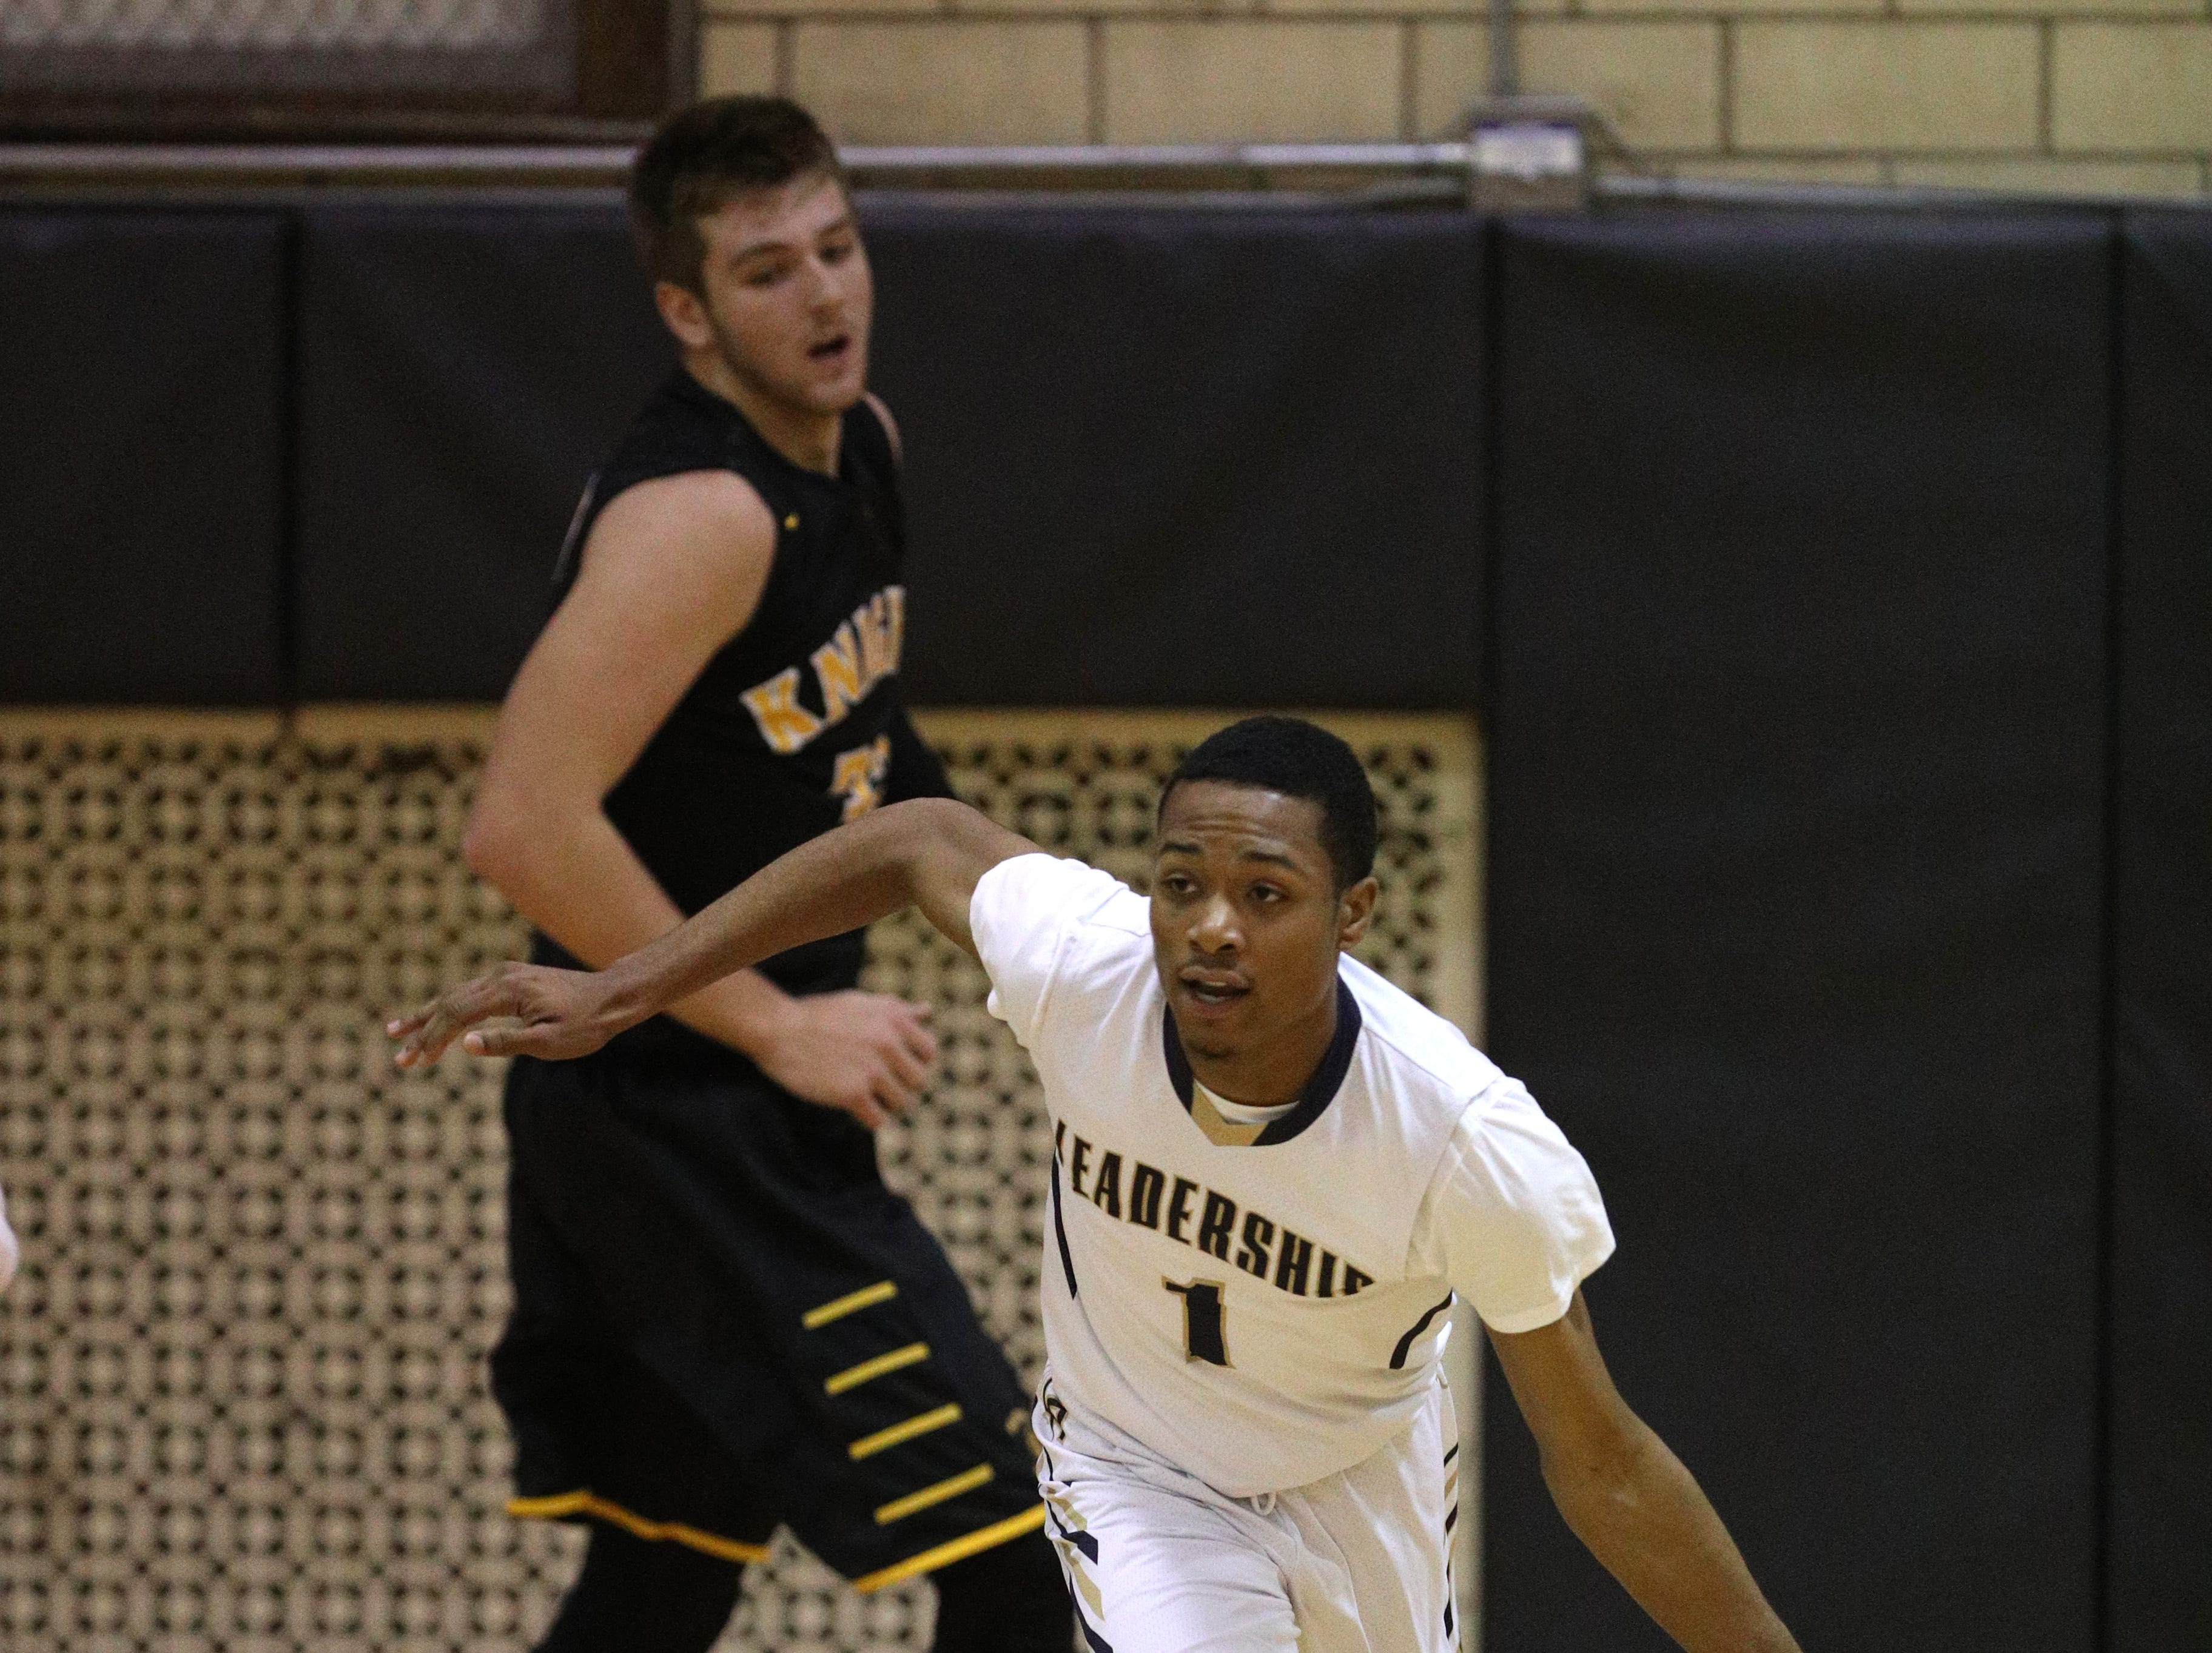 Leadership's Onajae Anderson  pushes the ball up the court against McQuaid.